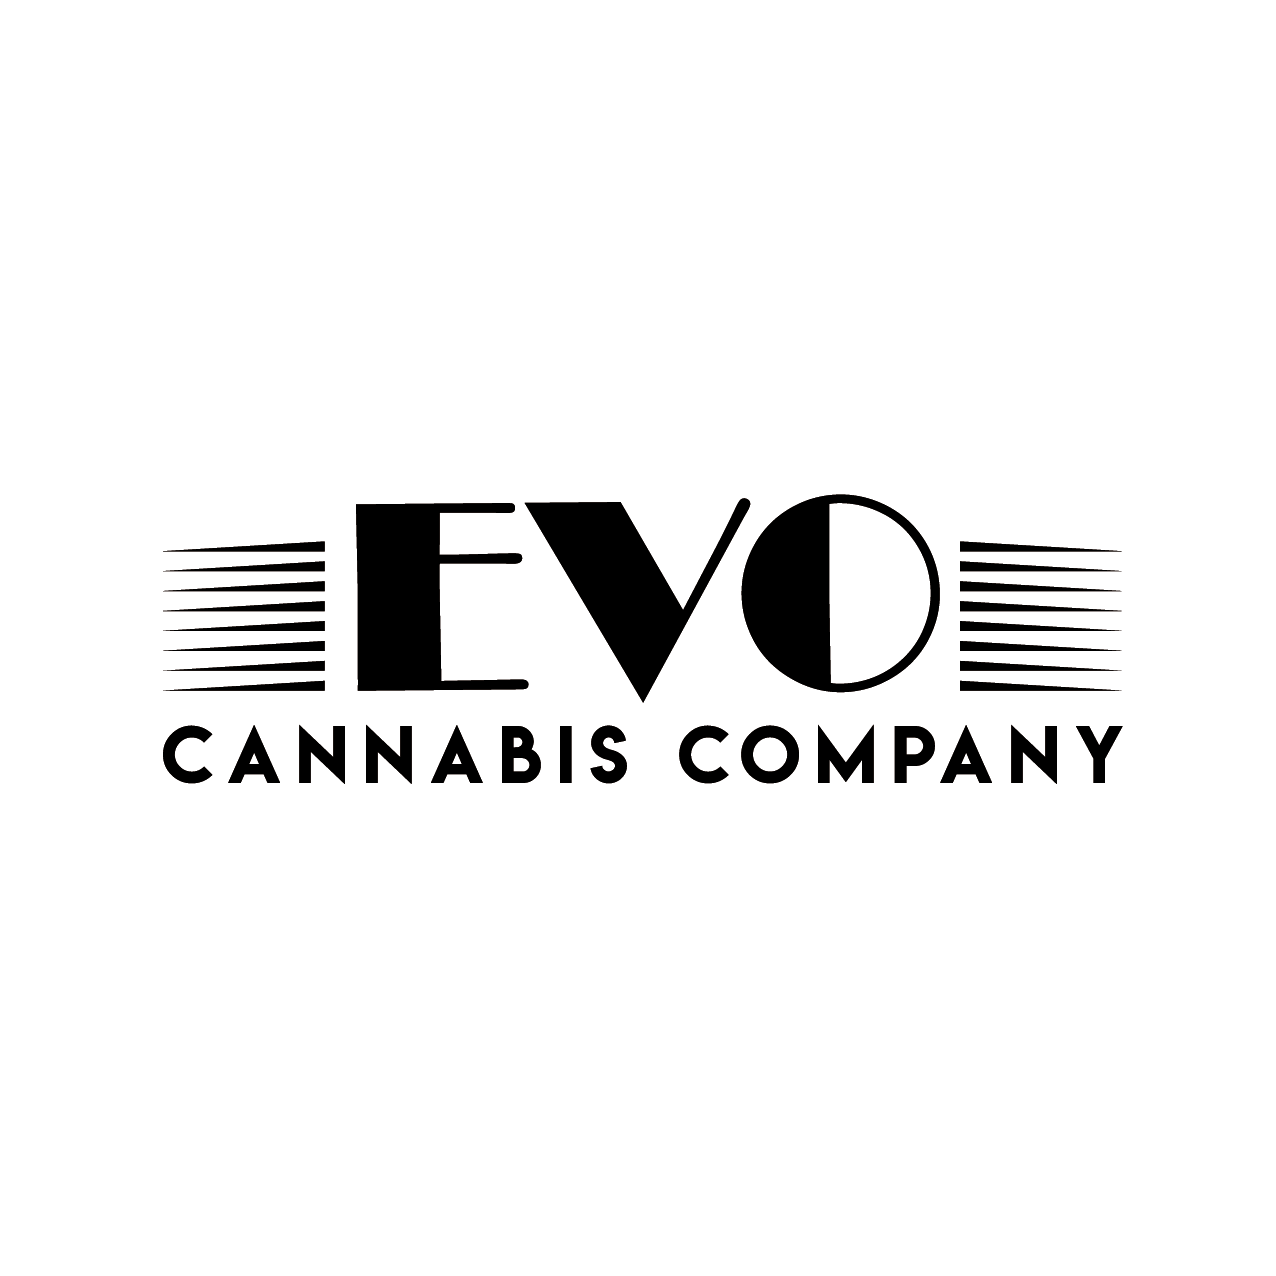 Evolution Cannabis TAH logo